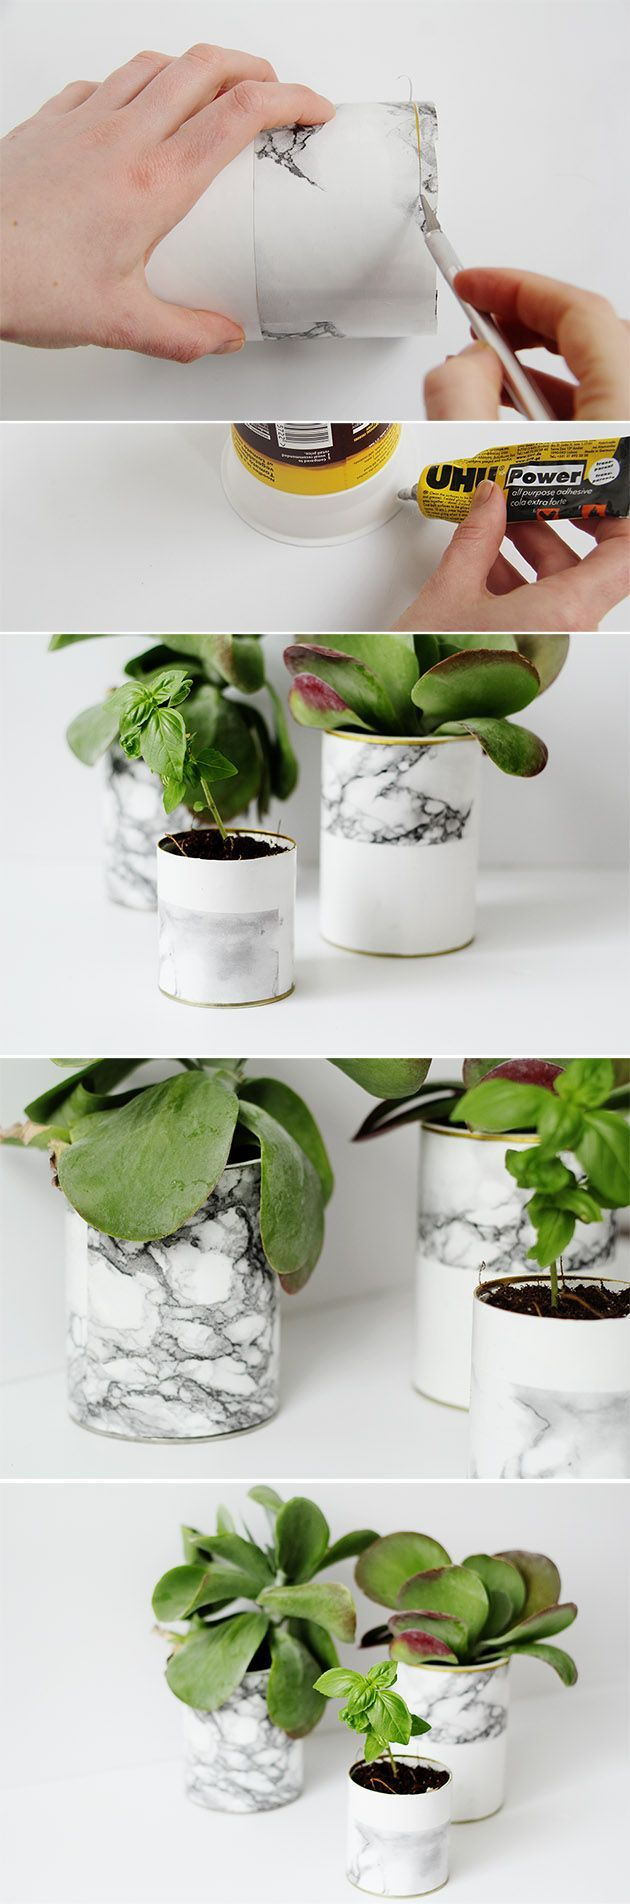 DIY: Marble planters using your recycled cans. You don't have to marble, you could print any texture or artwork.